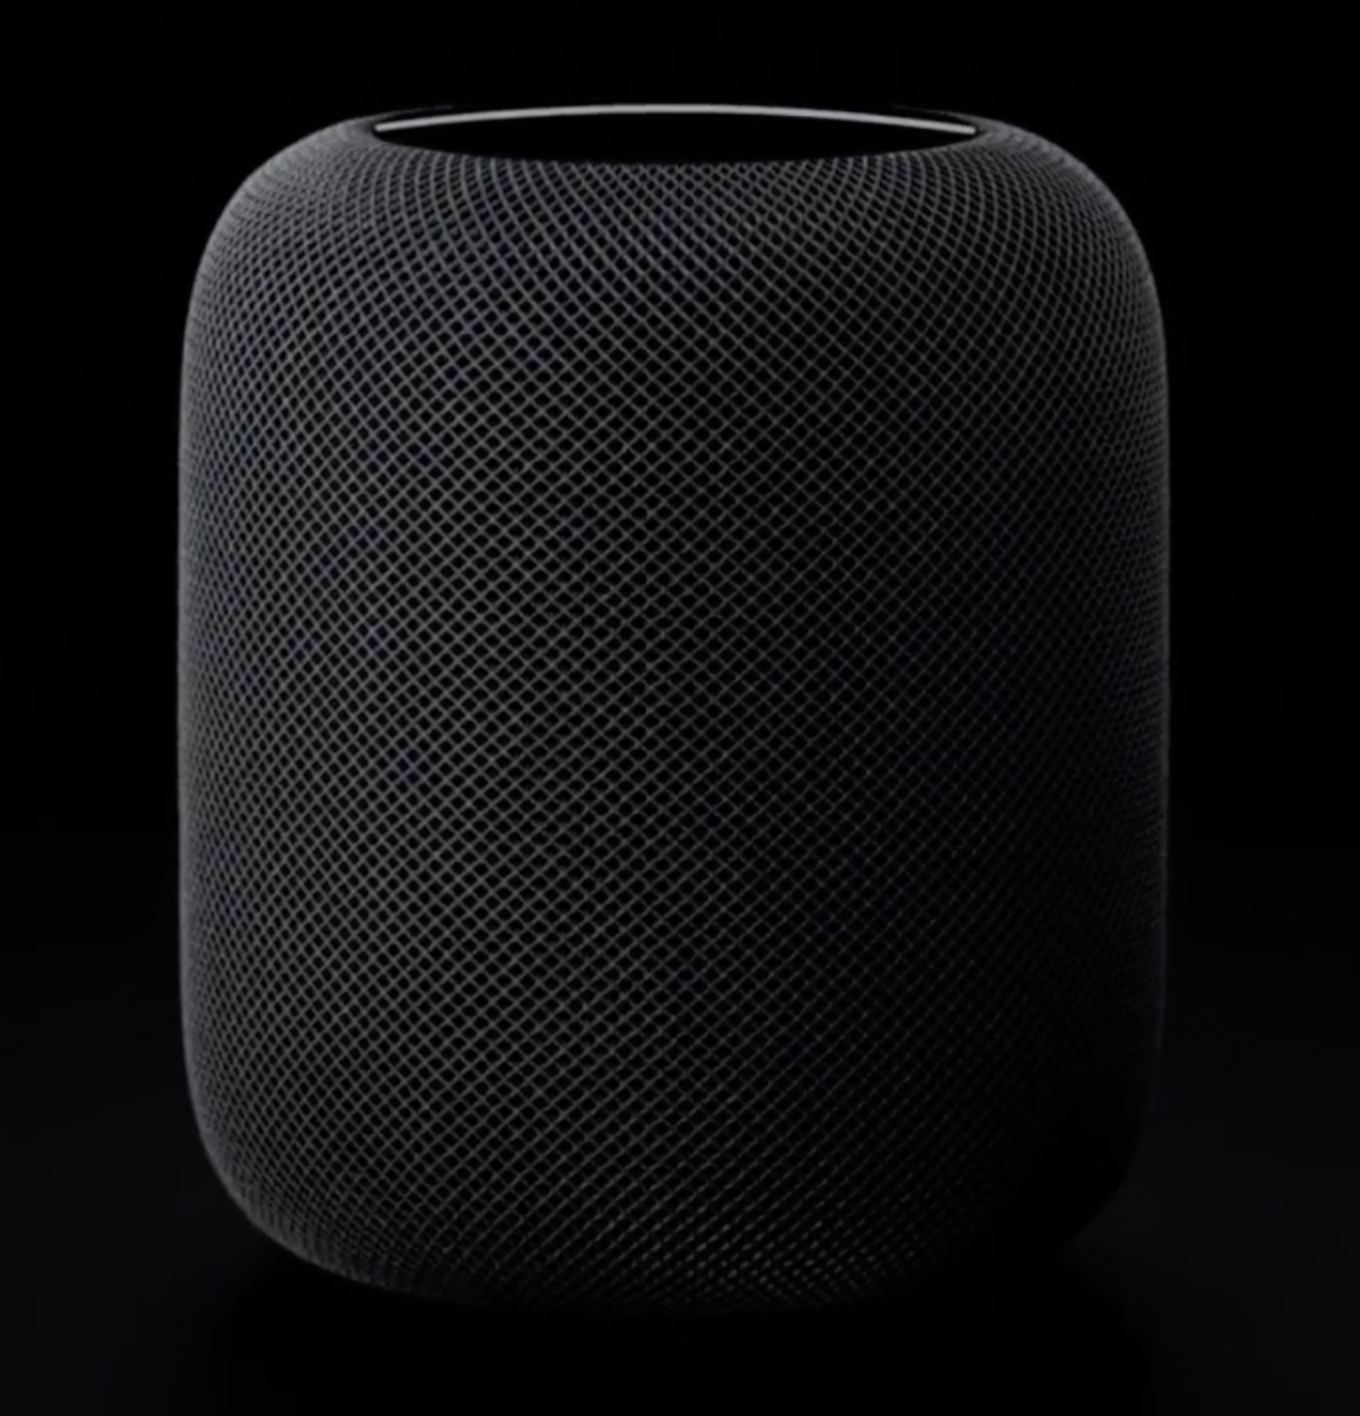 apple-homepod-black-front-view.jpg